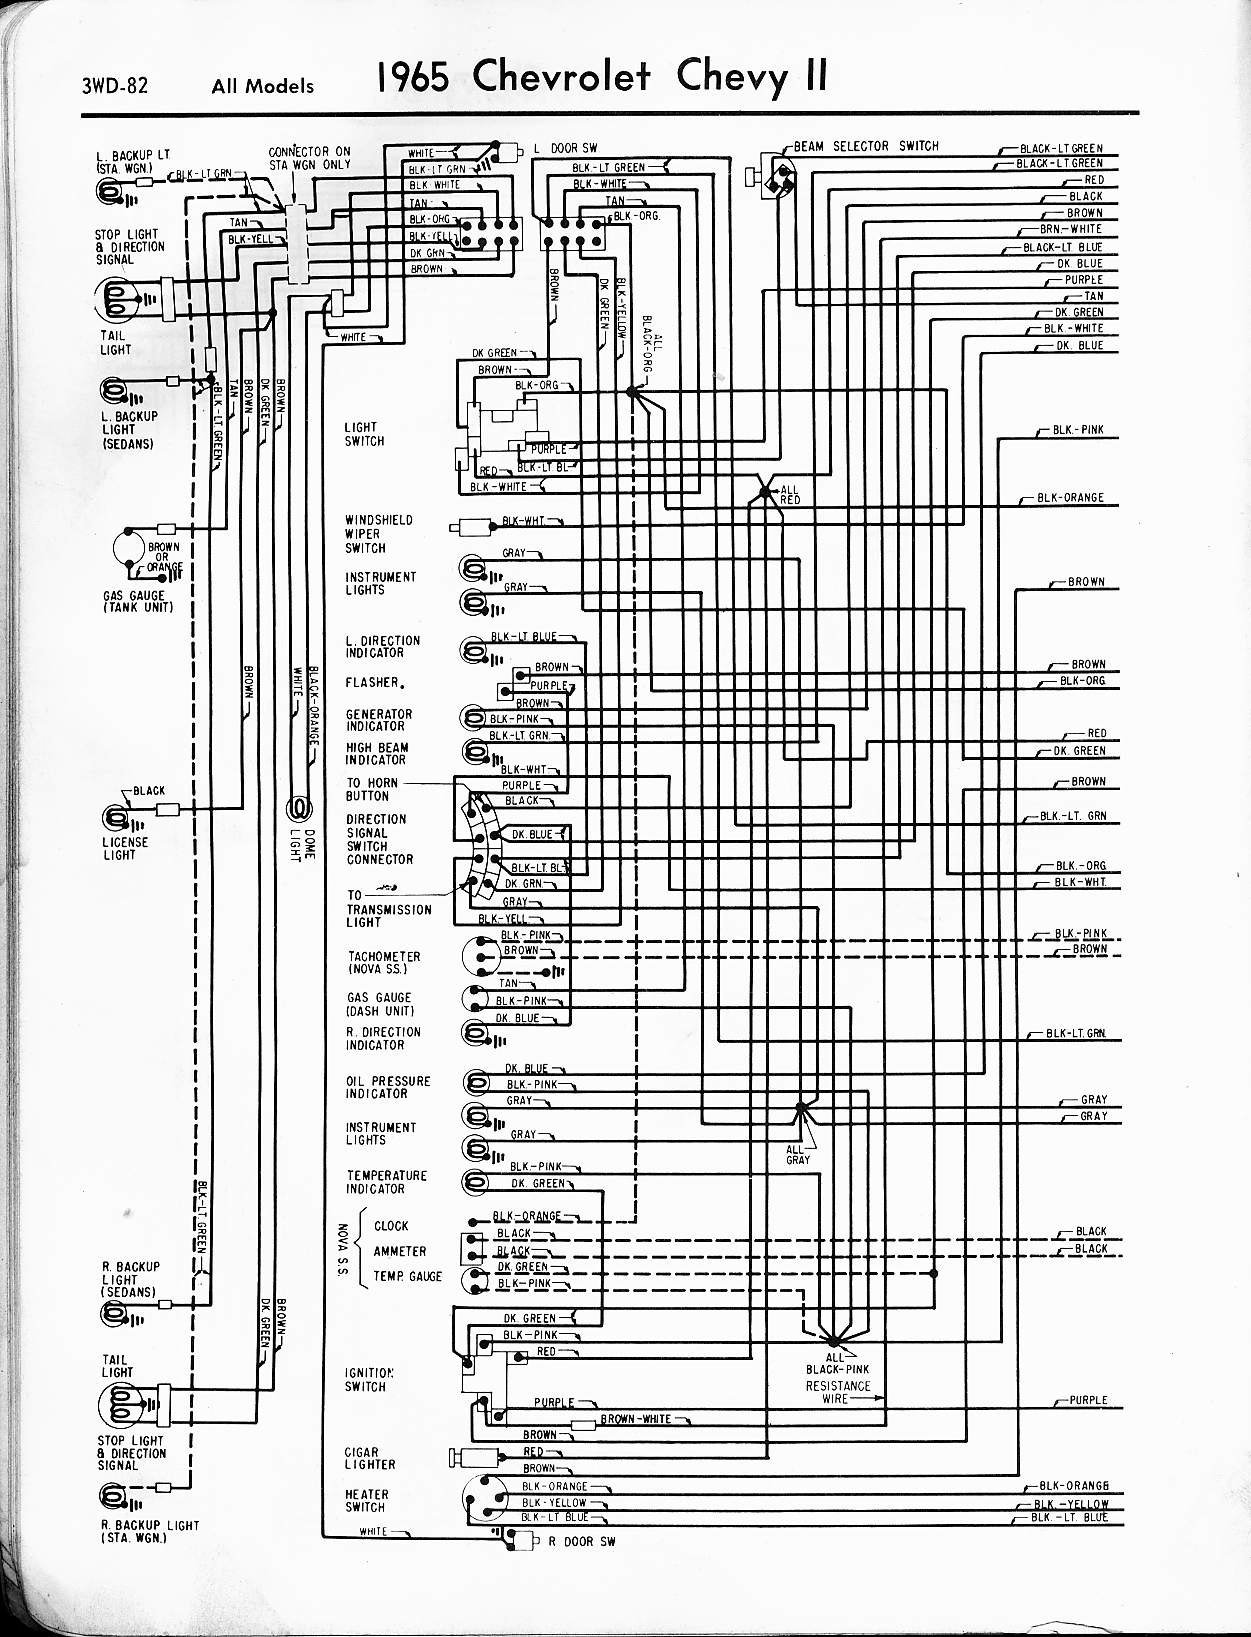 1965 Gmc Wiring Diagram Circuit Schema 1969 El Camino Lights C10 Electrical Diagrams Schematics 1984 Chevy Truck